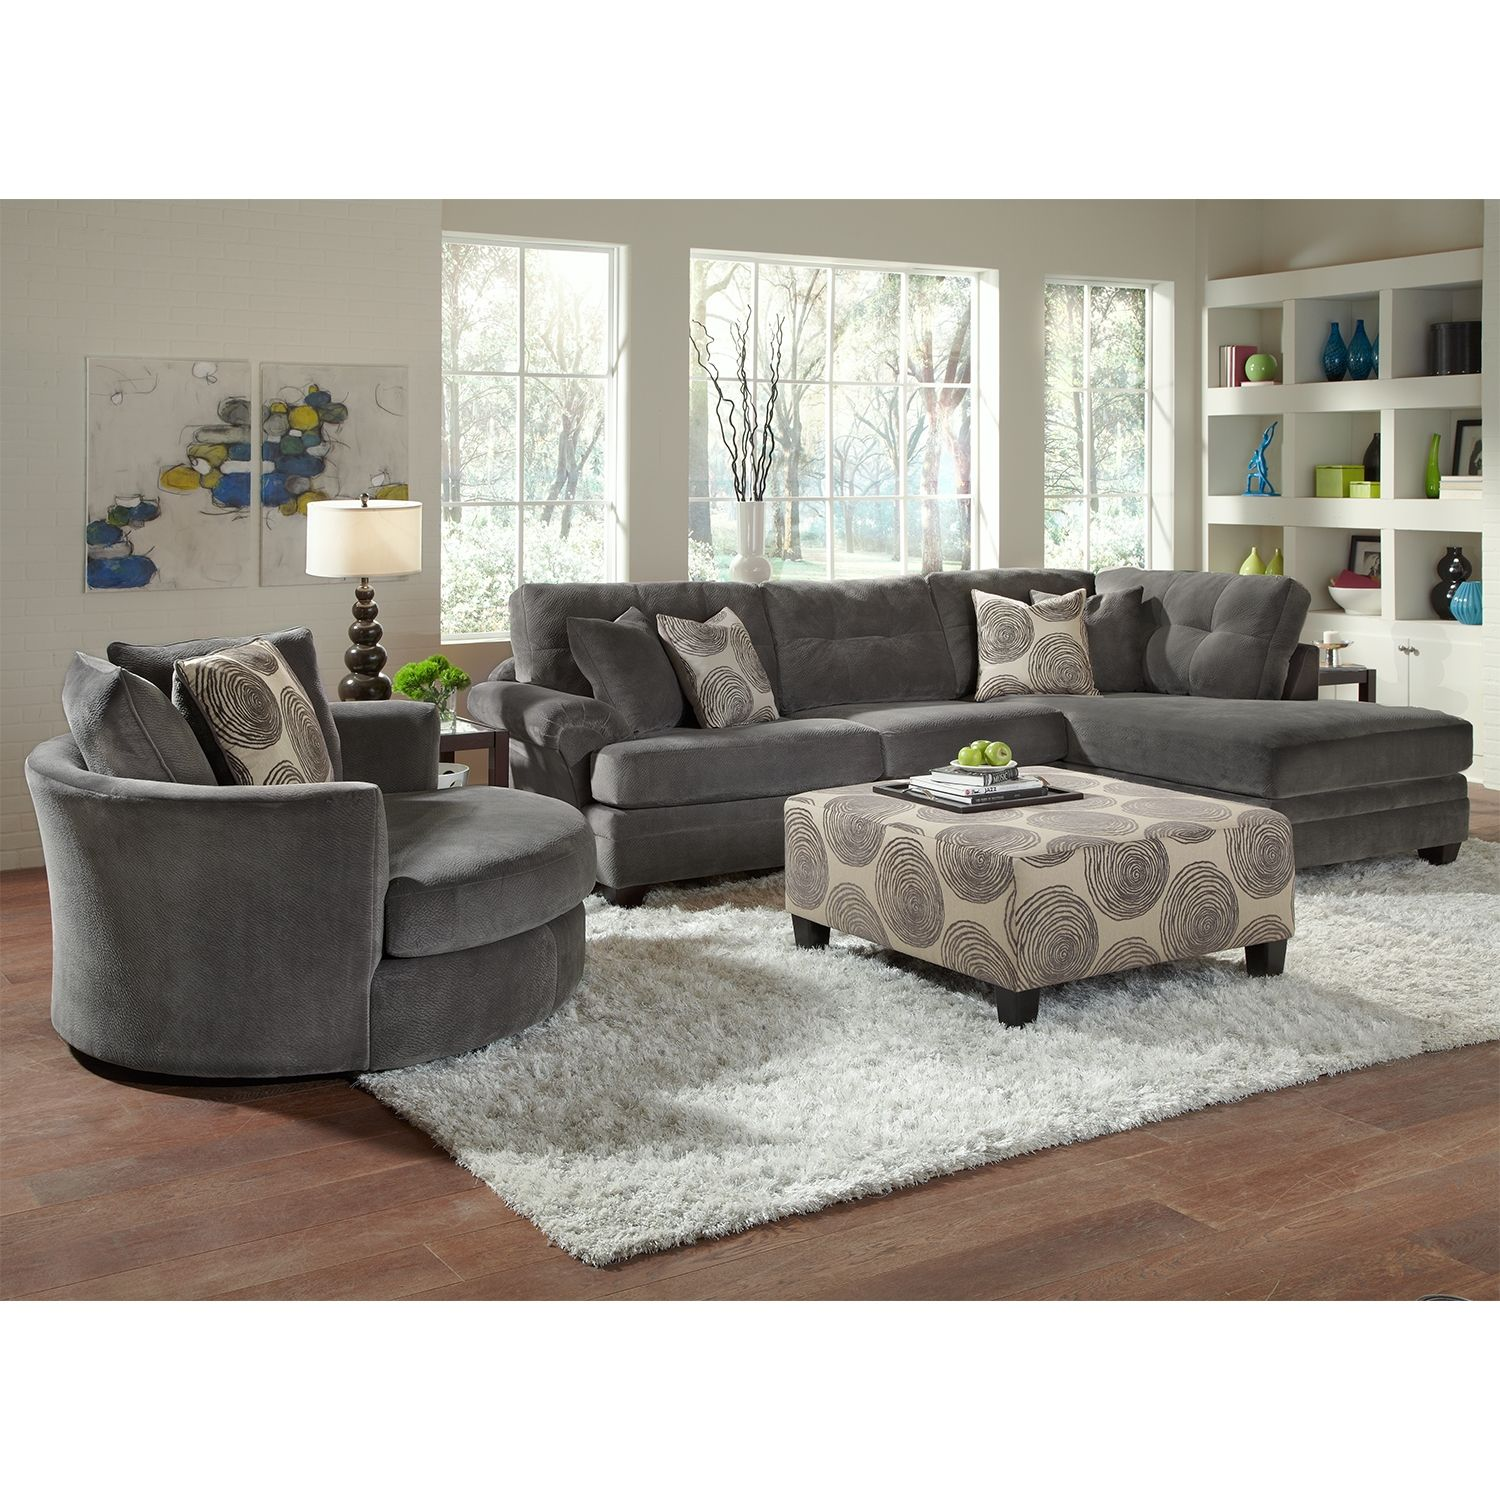 Cordelle 2 Piece Right Facing Chaise Sectional Gray